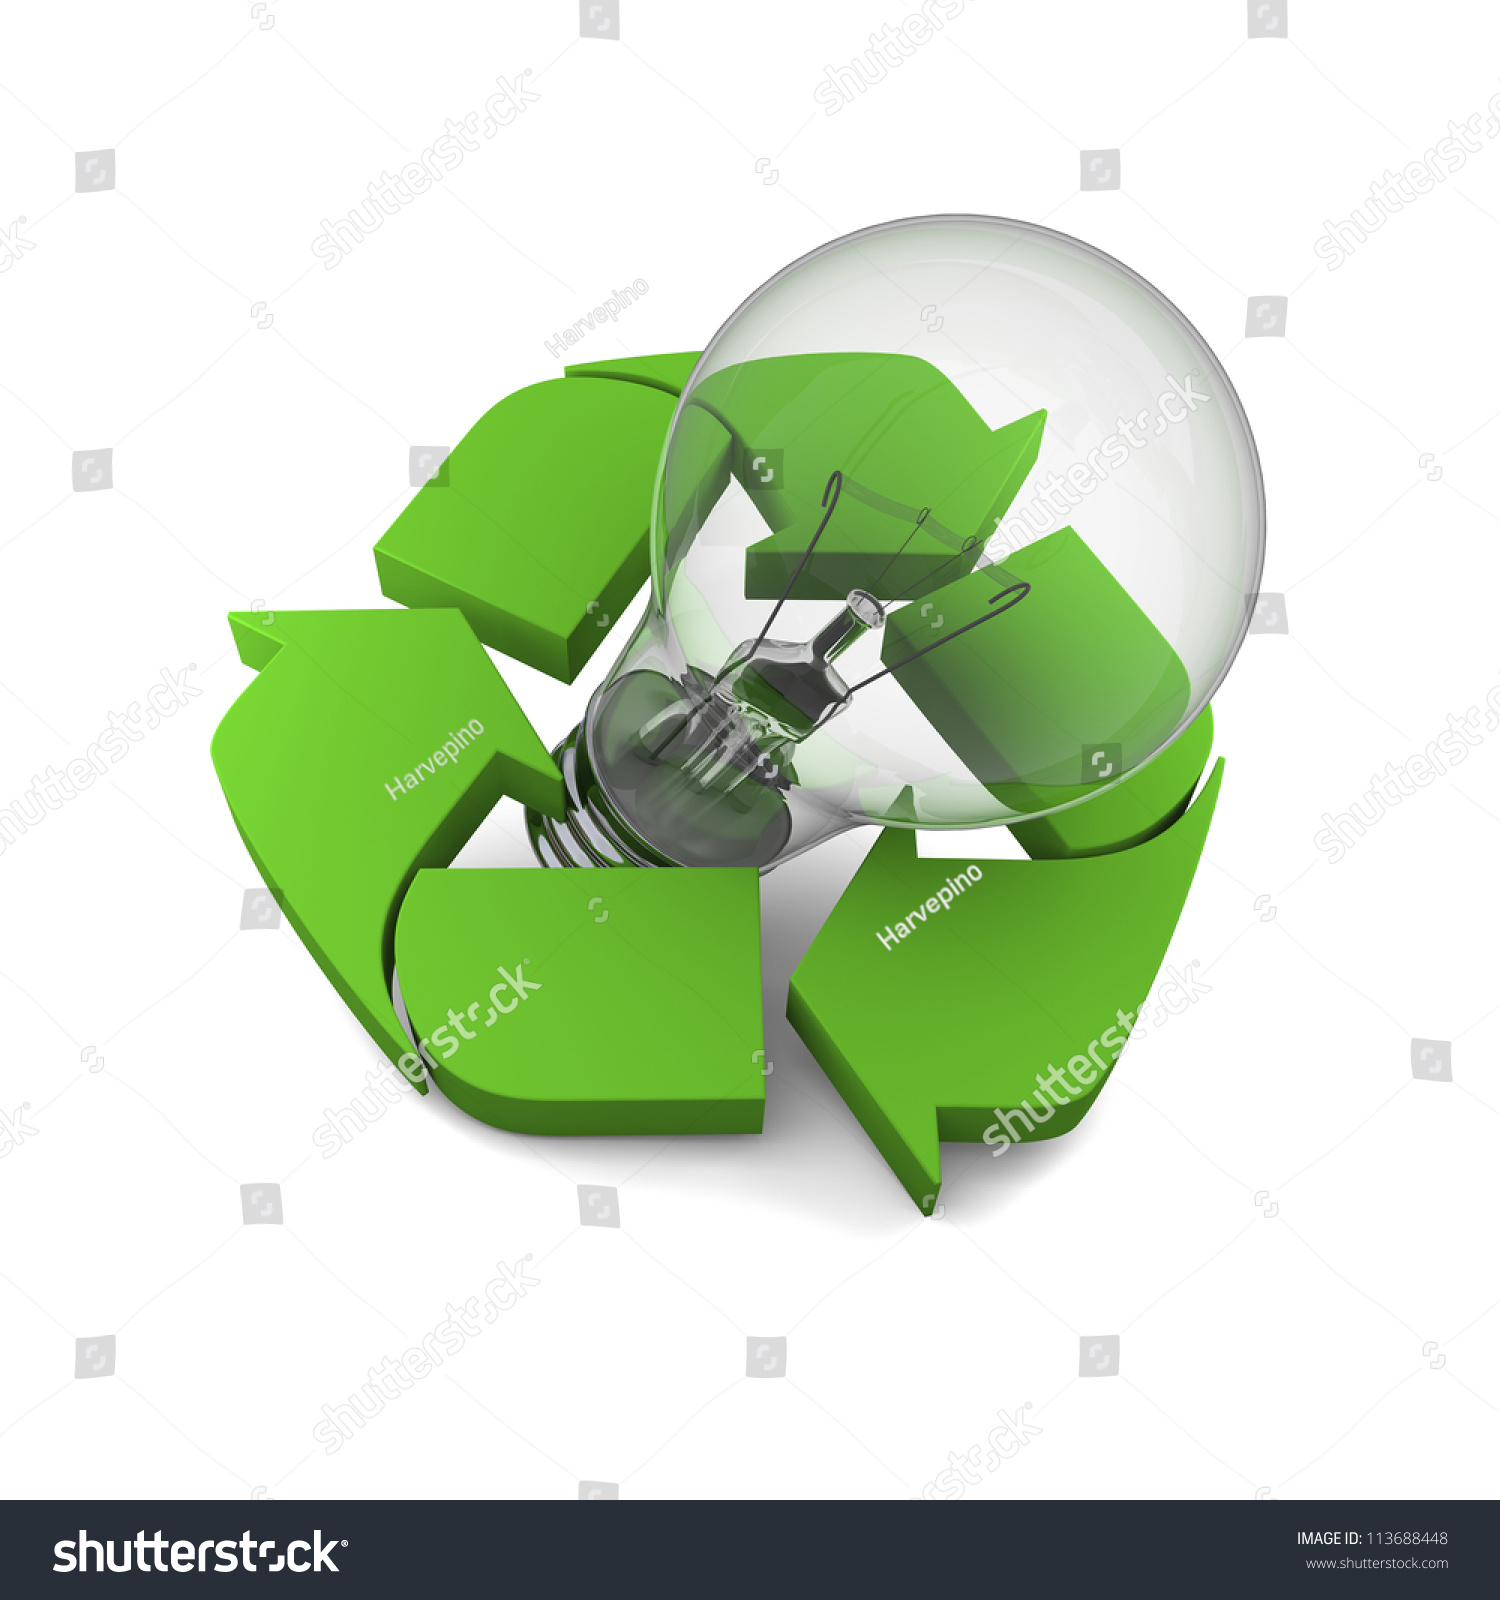 Lightbulb inside recycling symbol cocnept new stock illustration lightbulb inside recycling symbol cocnept of new ideas in environmental protection and conservation buycottarizona Image collections